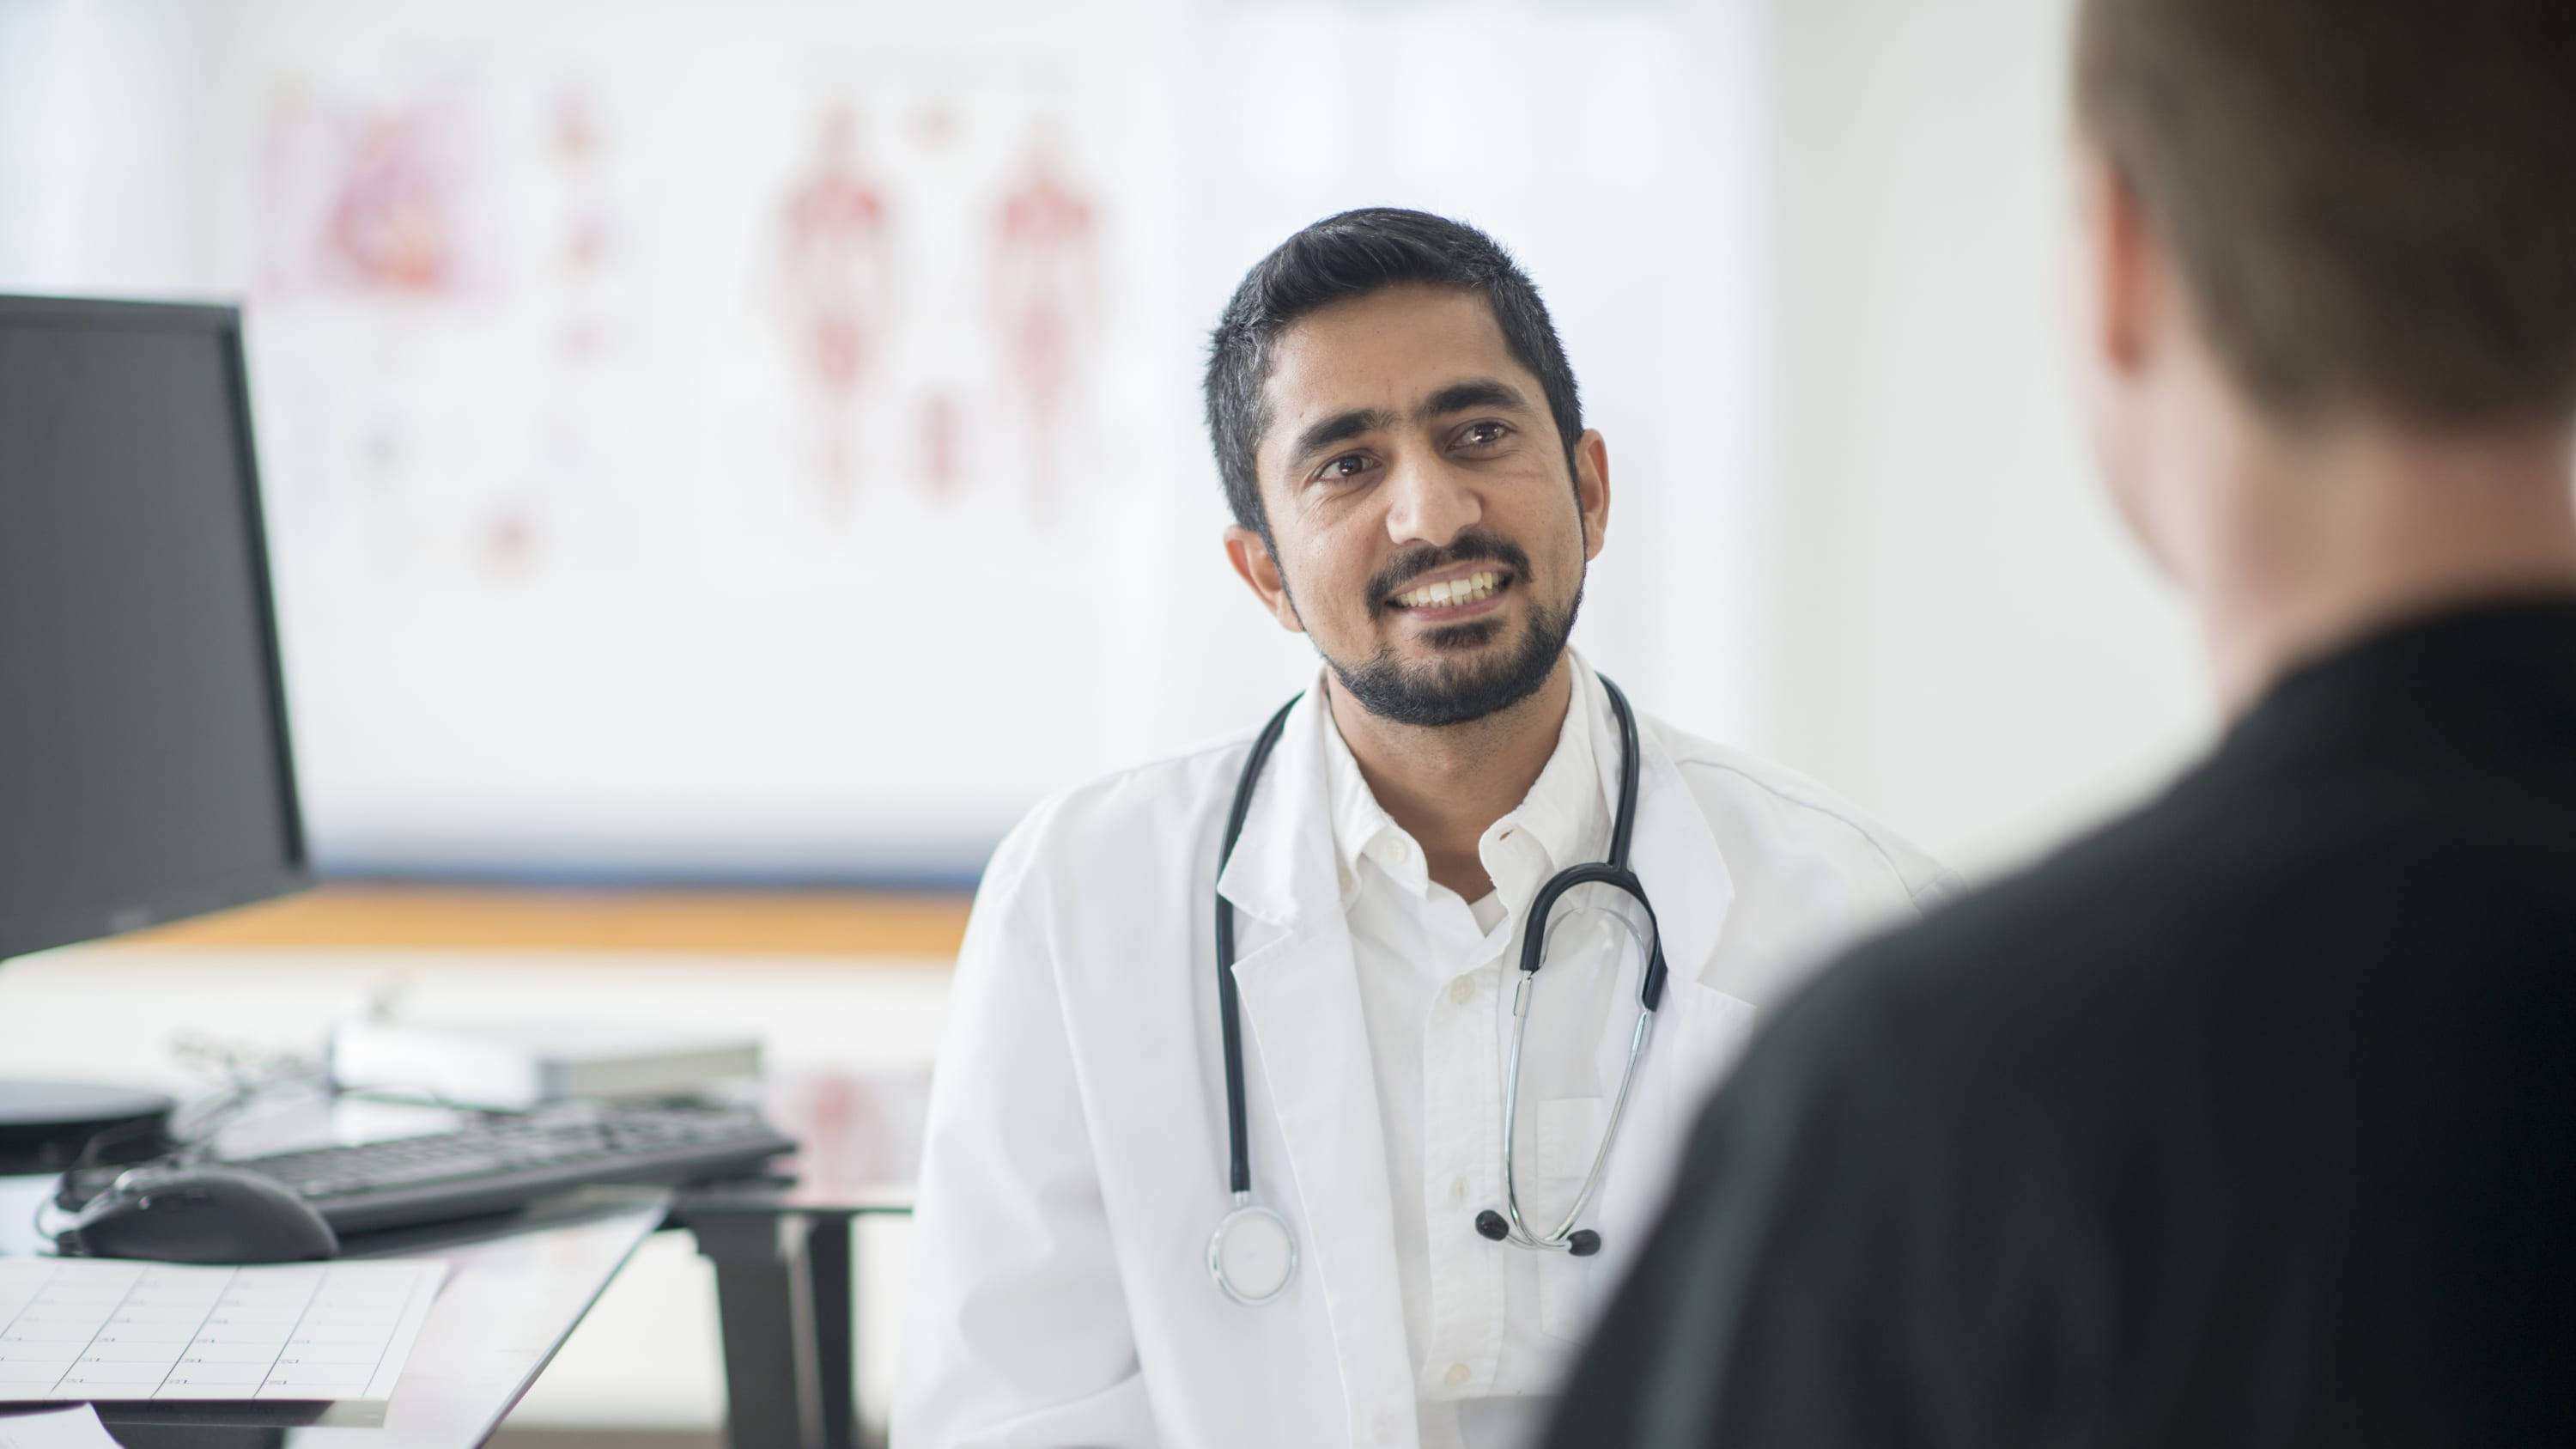 A portrait of a male doctor wearing a white coat who may be talking to a patient about radiation therapy for brain cancer.